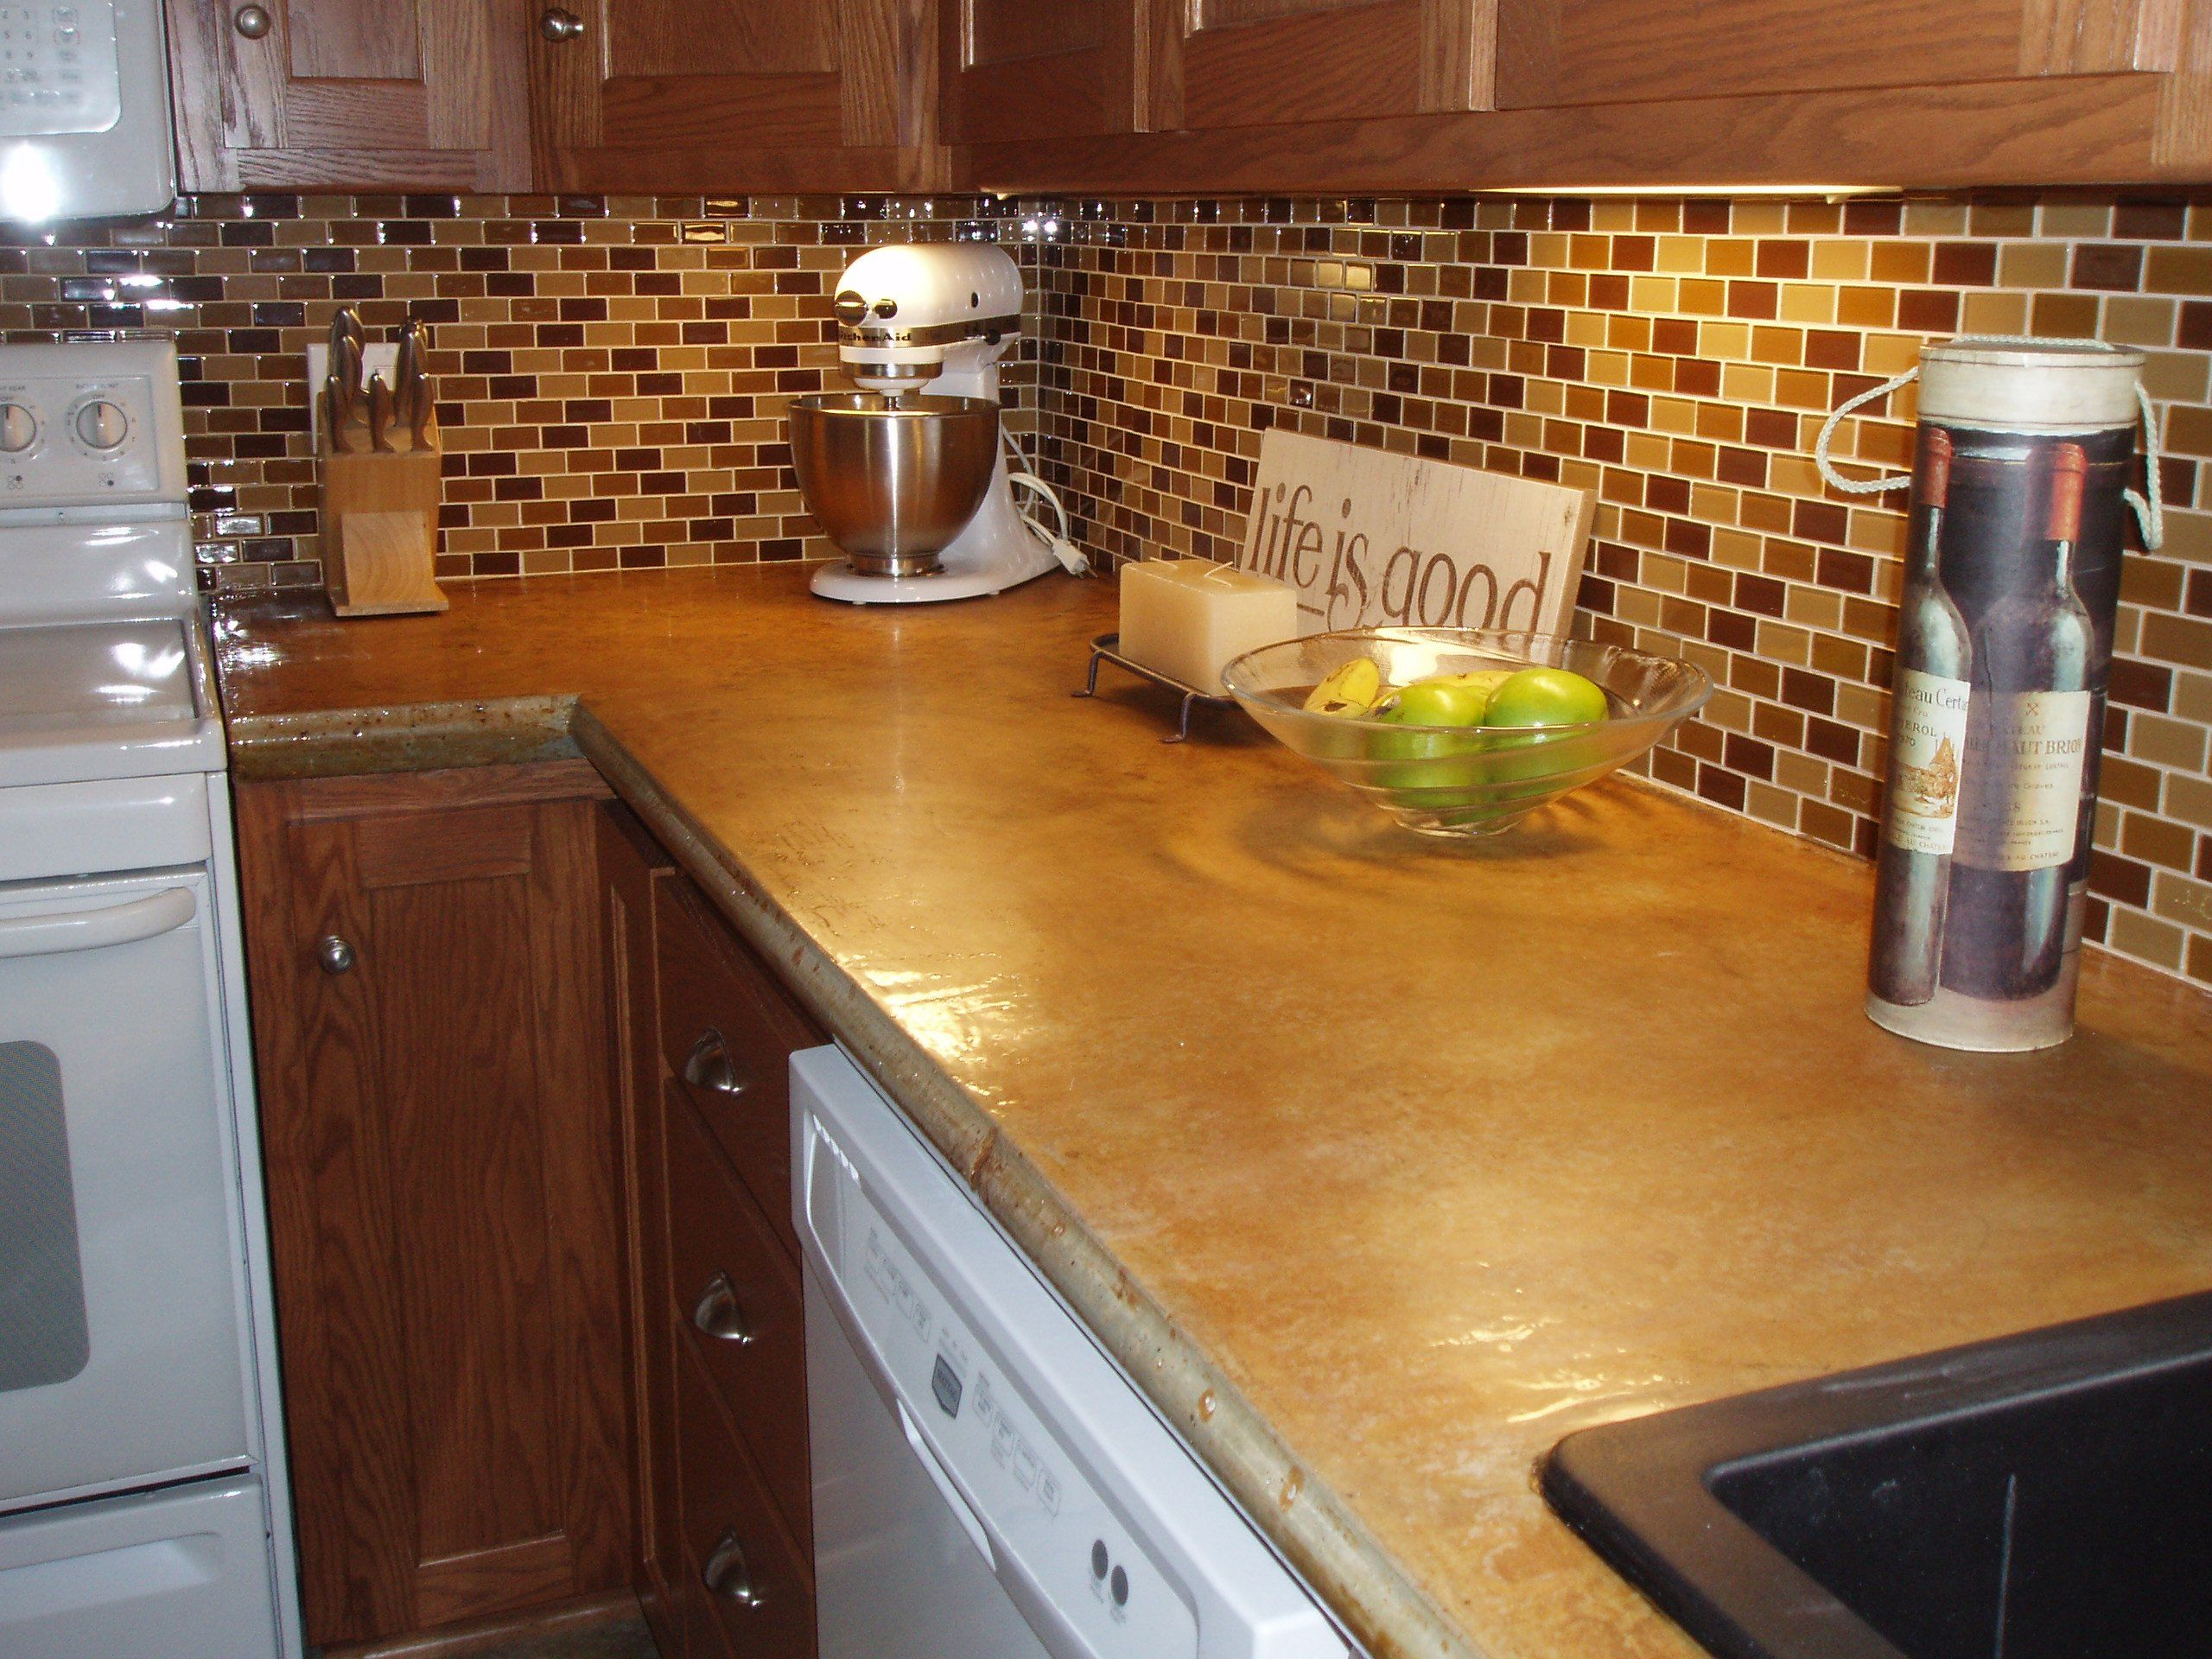 Concrete Countertop Gallery (With images) | Countertops ...